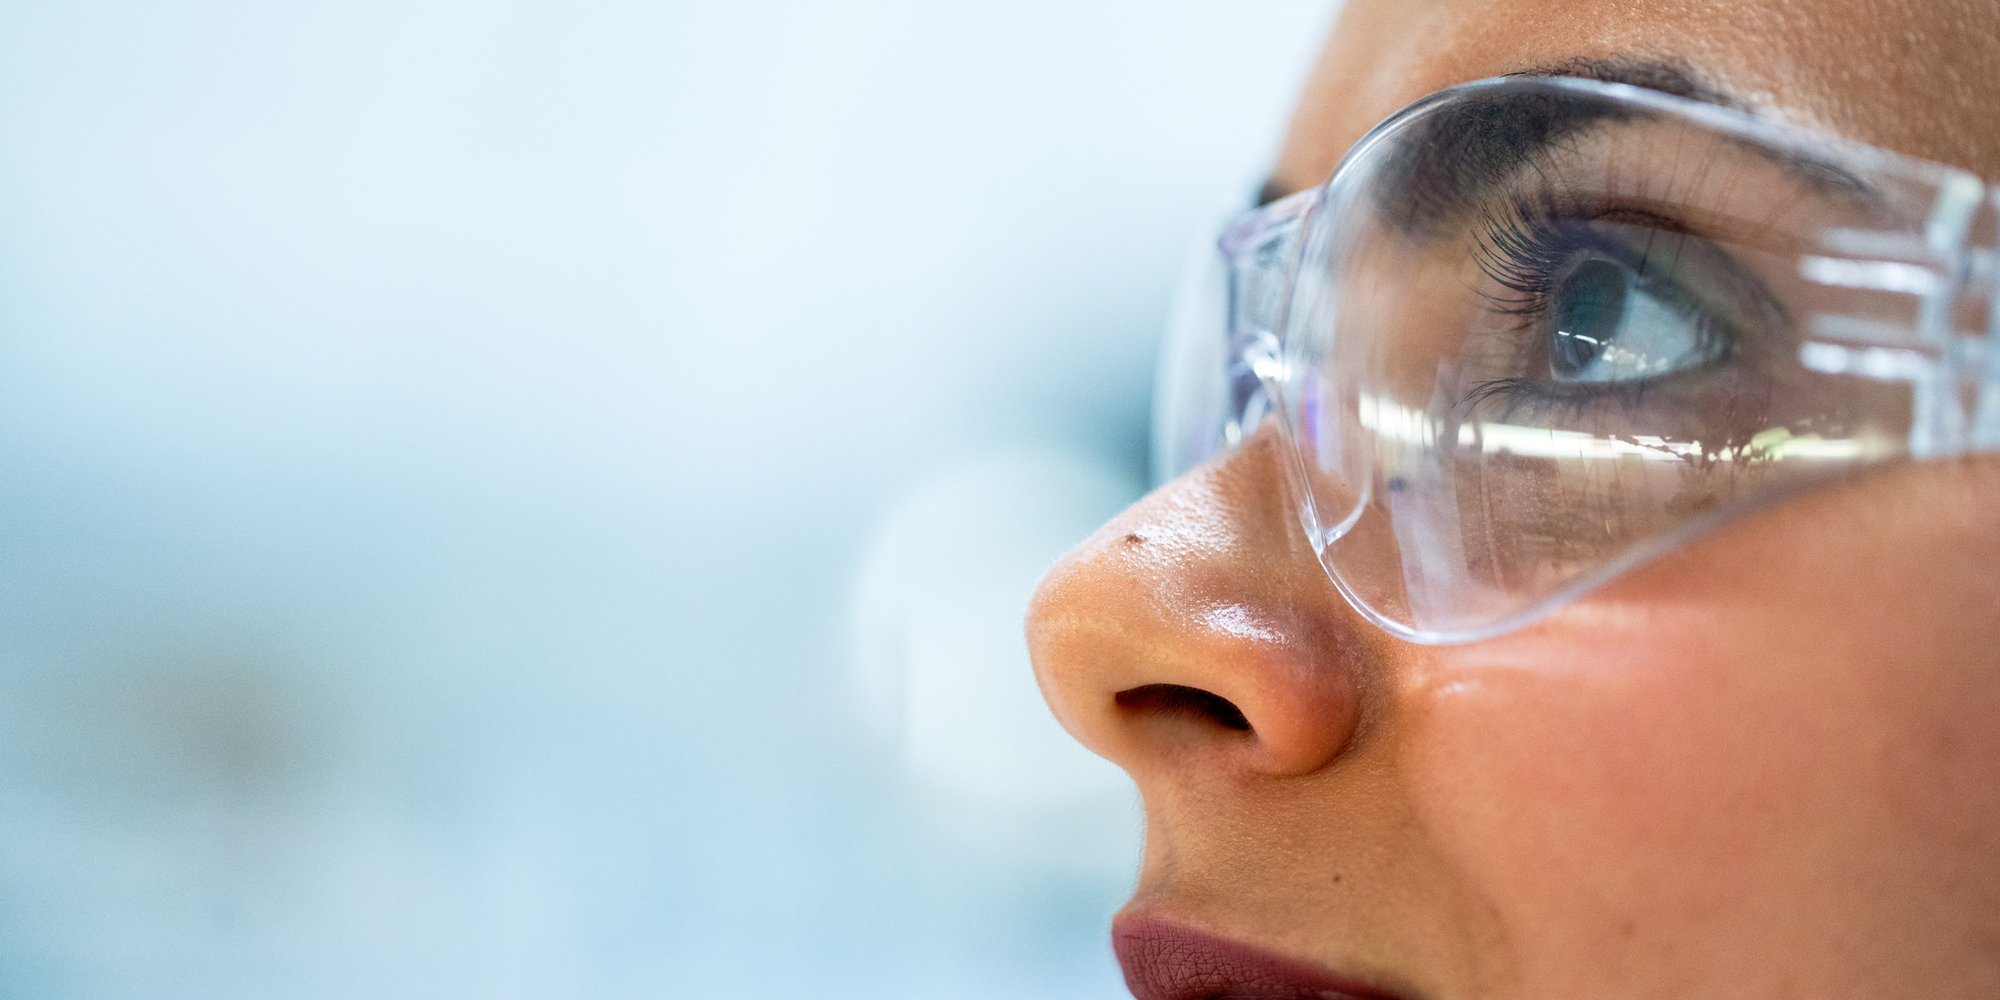 Woman in safety goggles